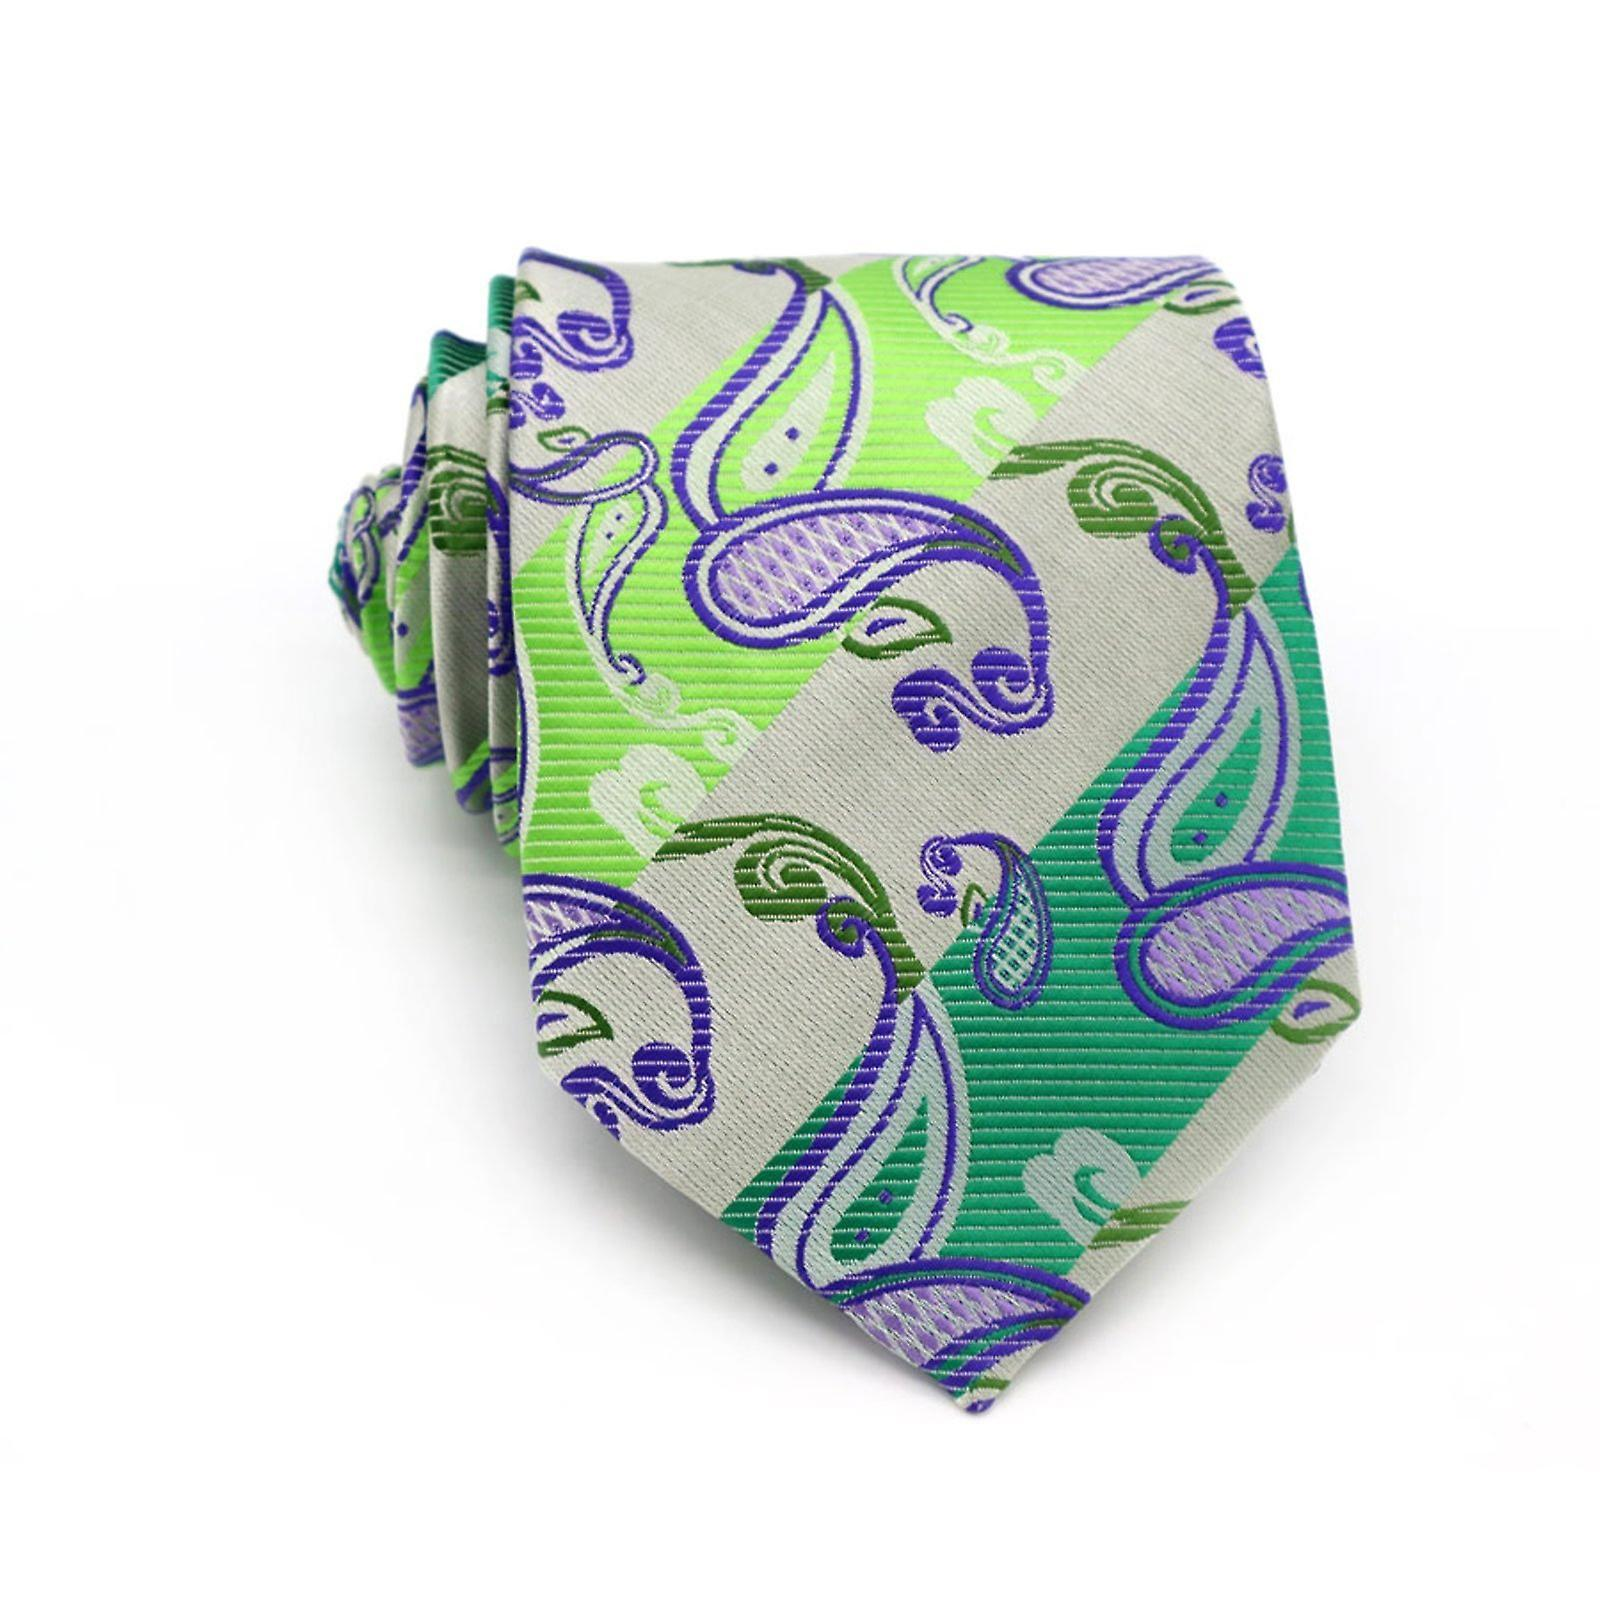 Bright green & purple & oat paisley pocket square & tie